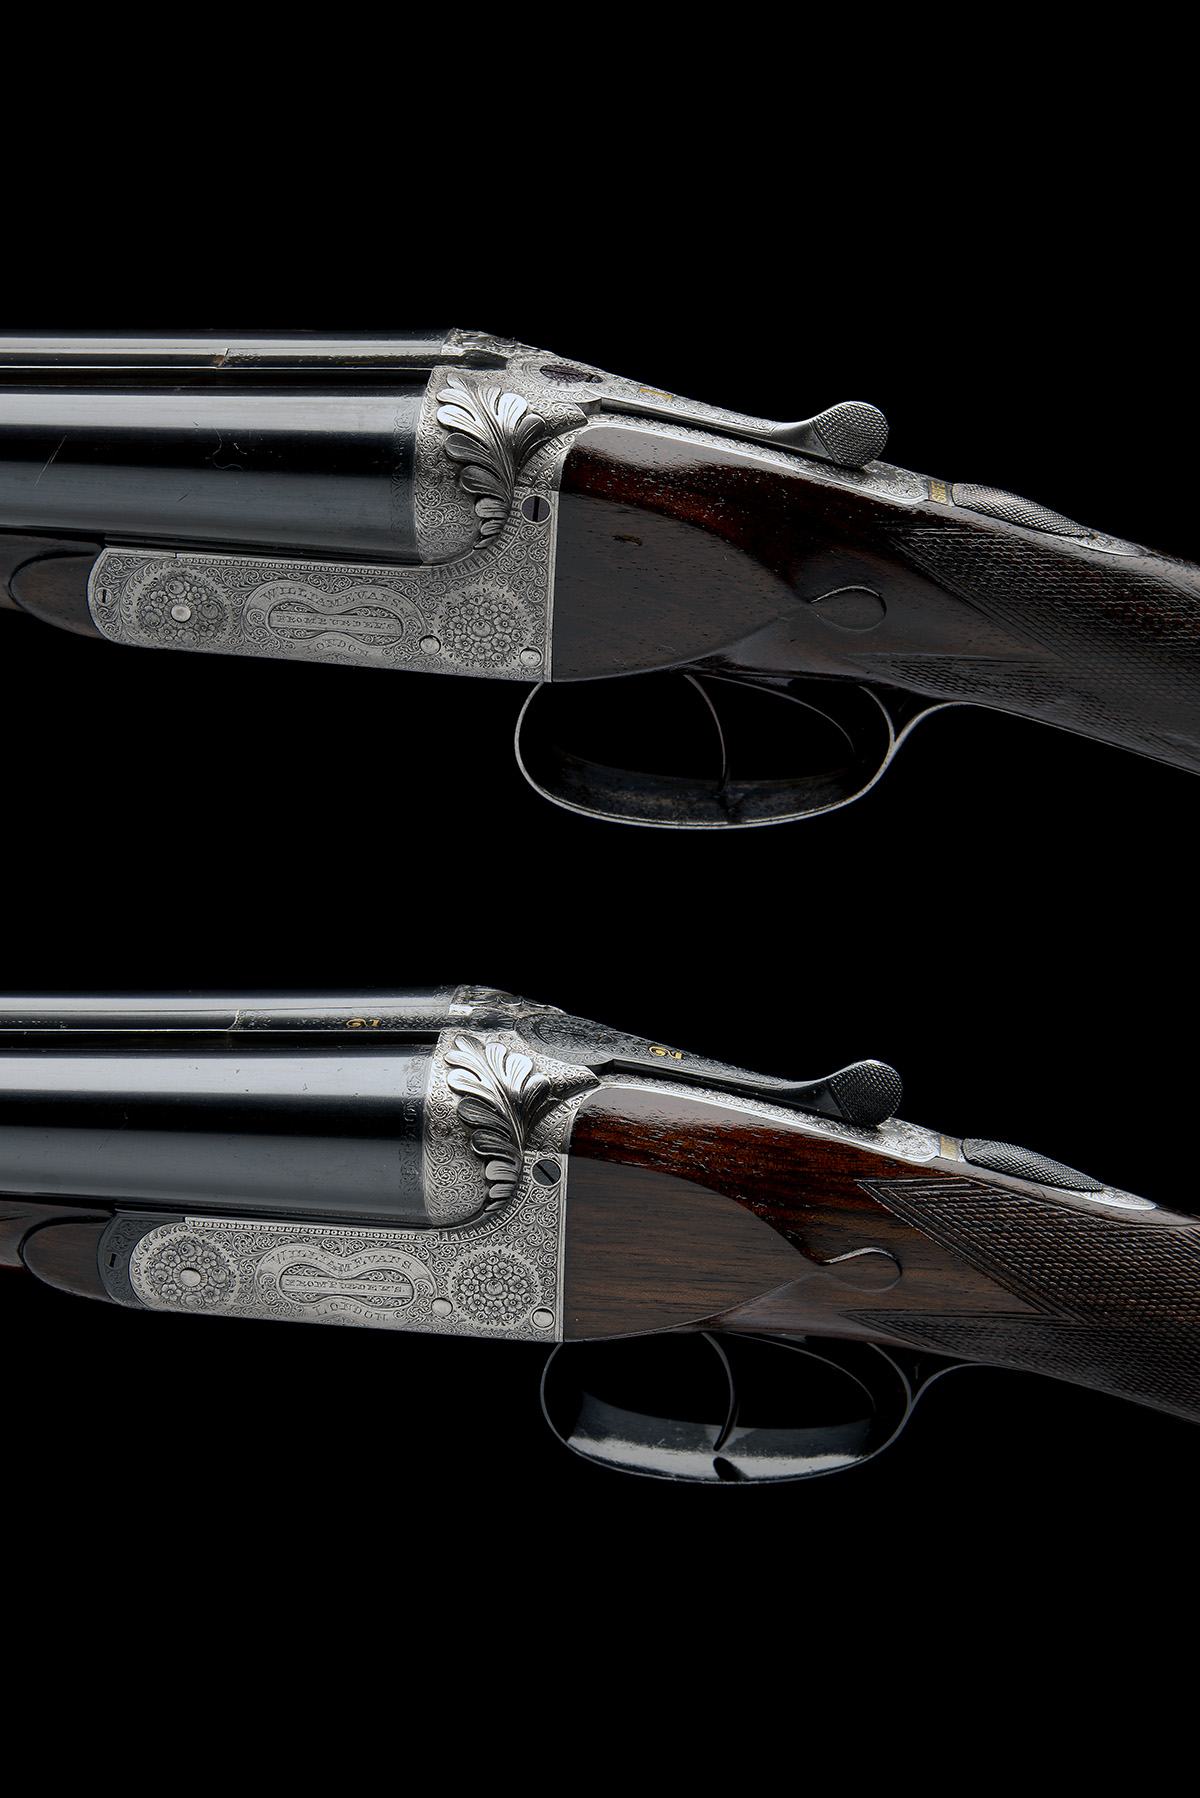 WILLIAM EVANS (FROM PURDEY'S) A PAIR OF 12-BORE BOXLOCK EJECTORS, serial no. 5433 / 4, for 1901, - Image 4 of 11